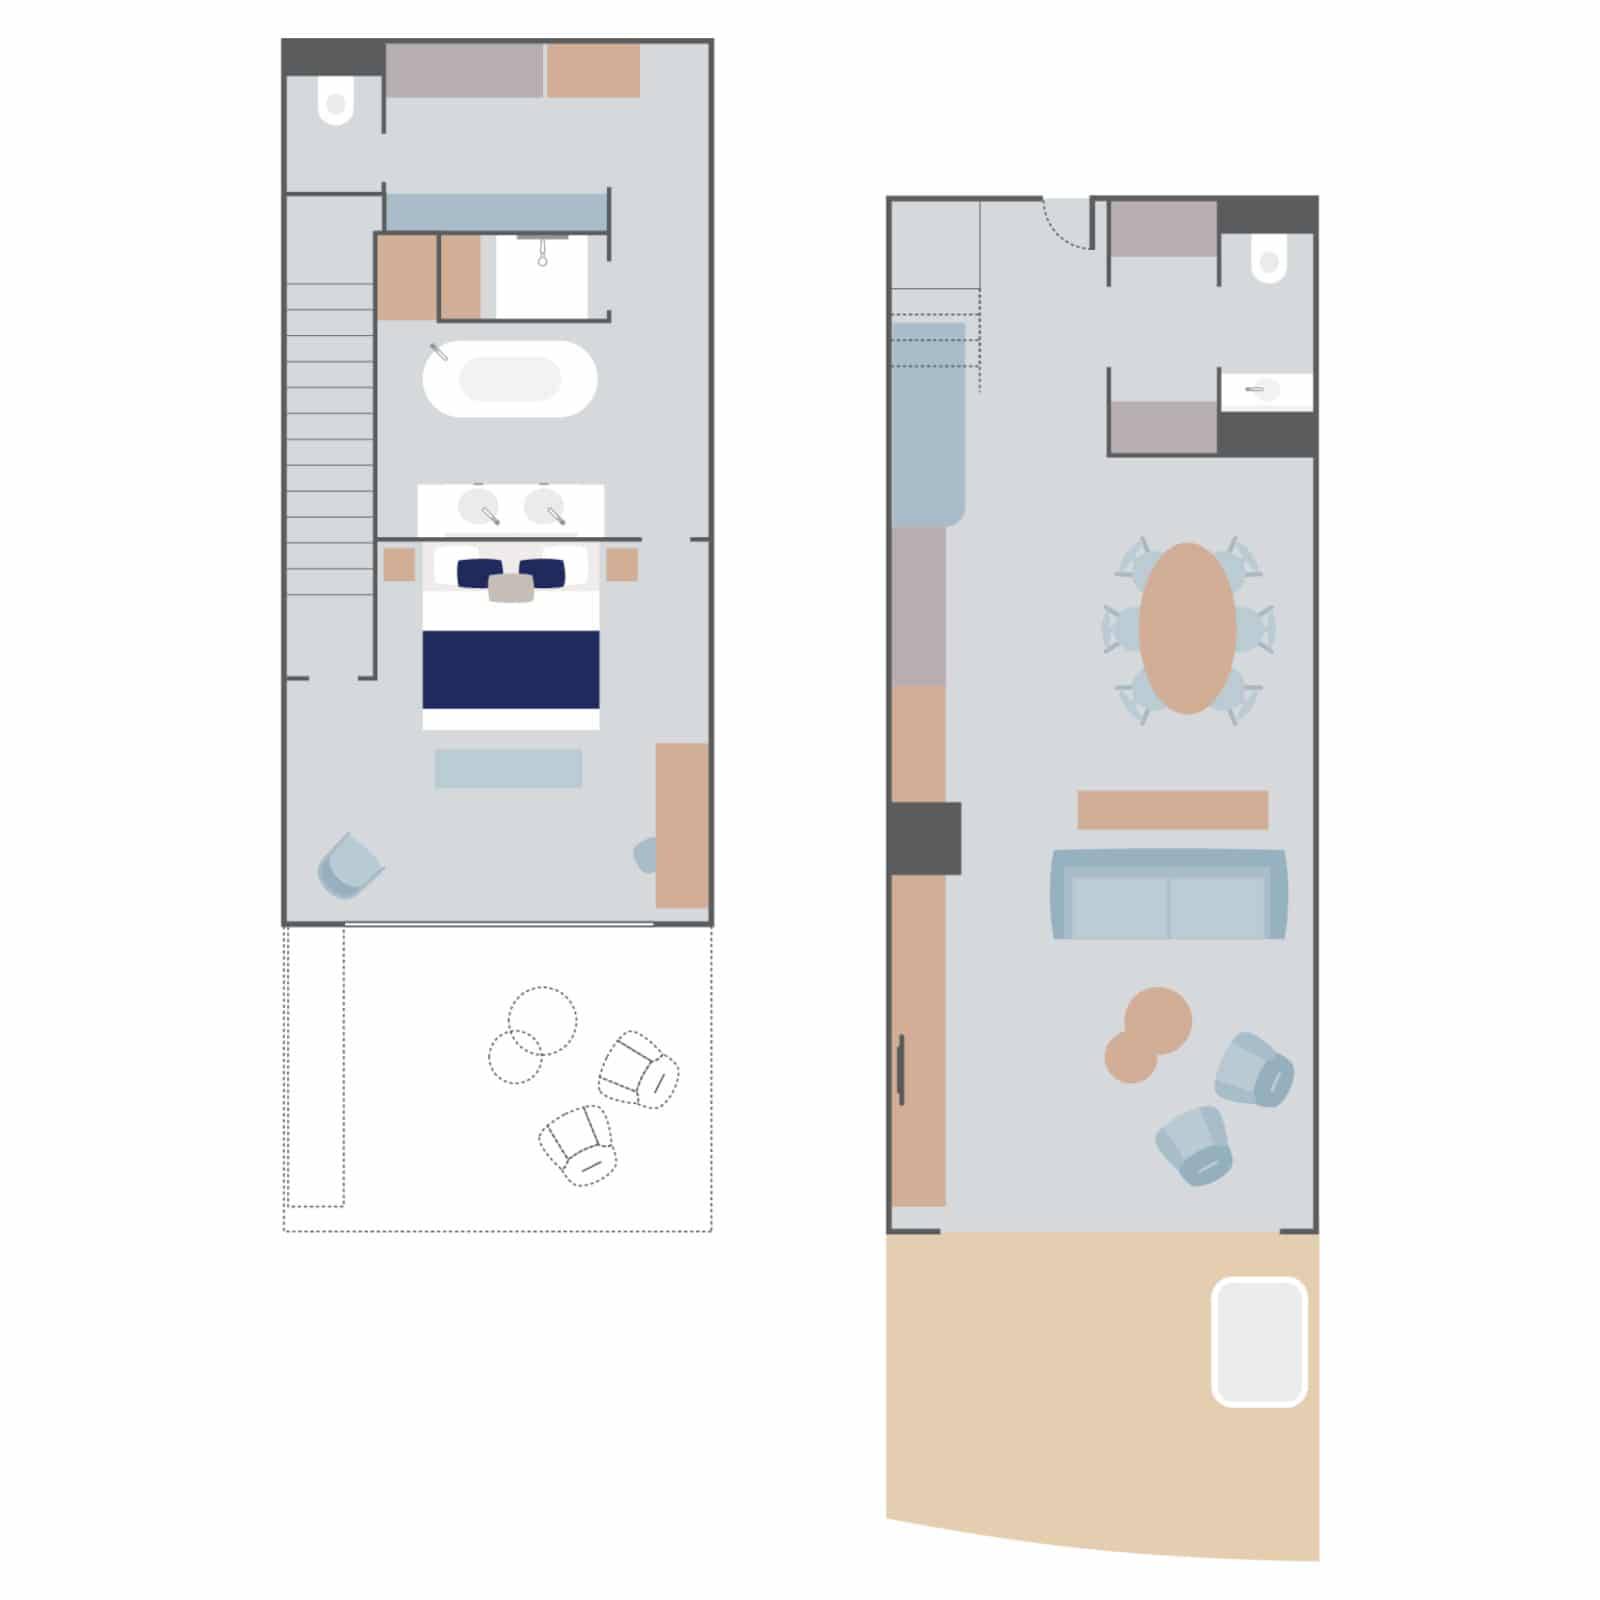 Layout of Duplex Suite aboard Le Commandant Charcot hybrid electric ship with two floors connected by stairs, double bed, couches & 2 separate seating areas, 2 bathrooms (1 with tub), walk-in closet, kitchen table & chairs & large doorway to a balcony with a hot tub.